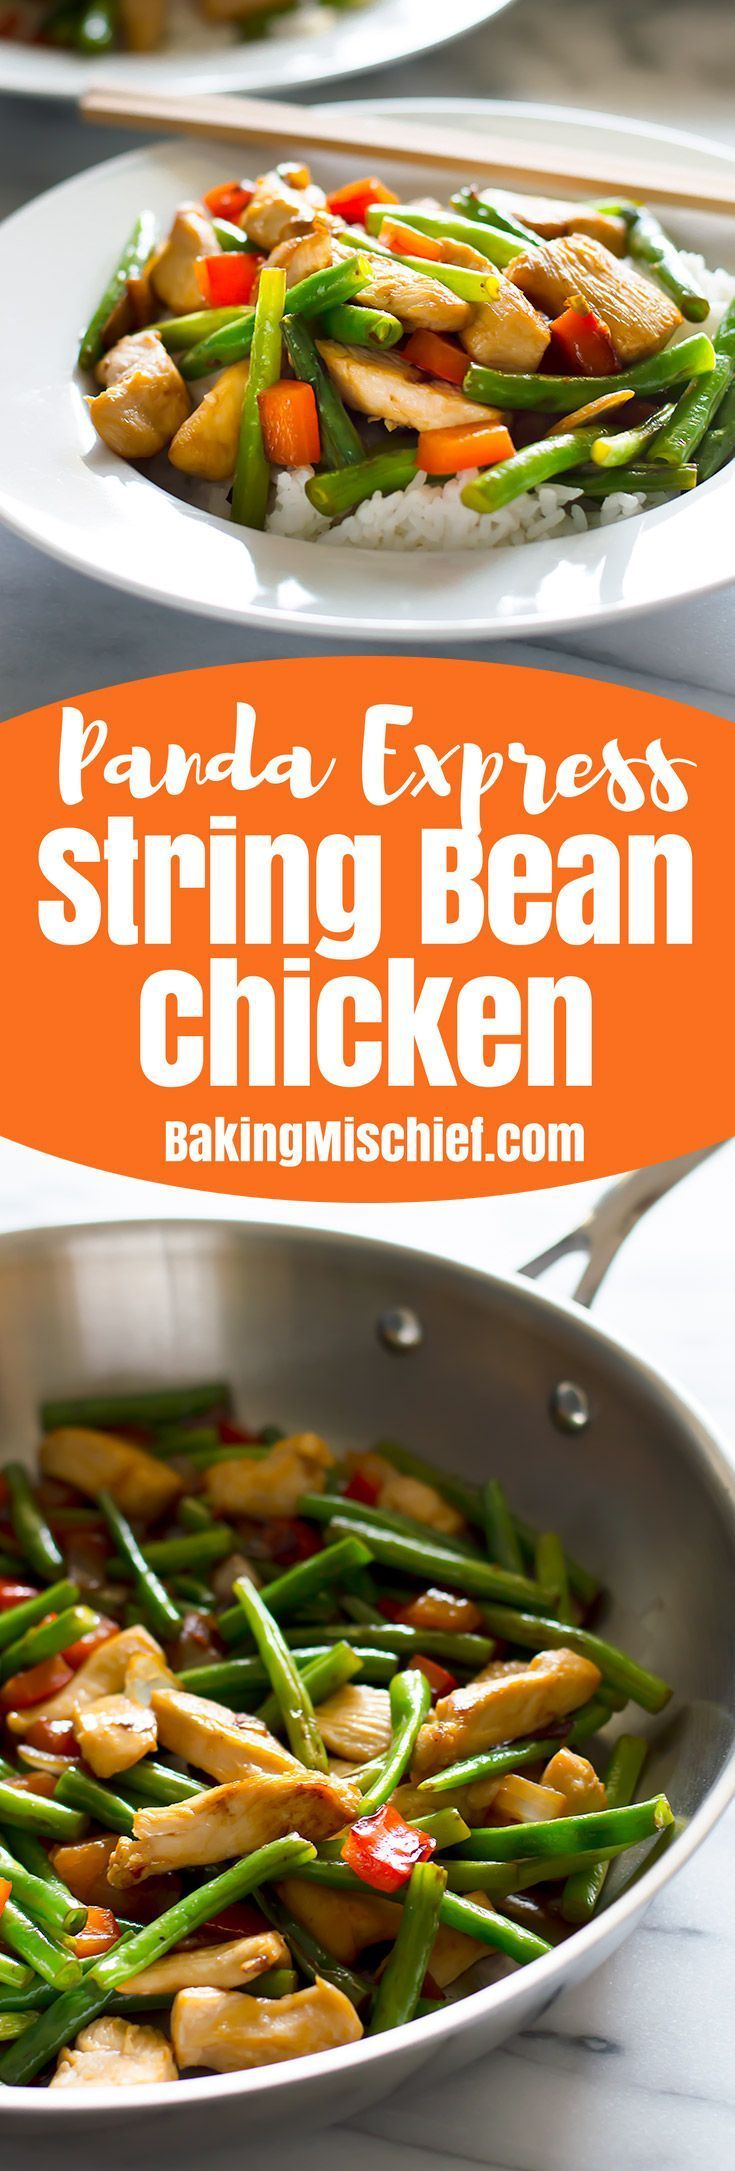 This healthy Panda Express Chicken recipe is an easy dinner: light, simple, and delicious. From http://BakingMischief.com